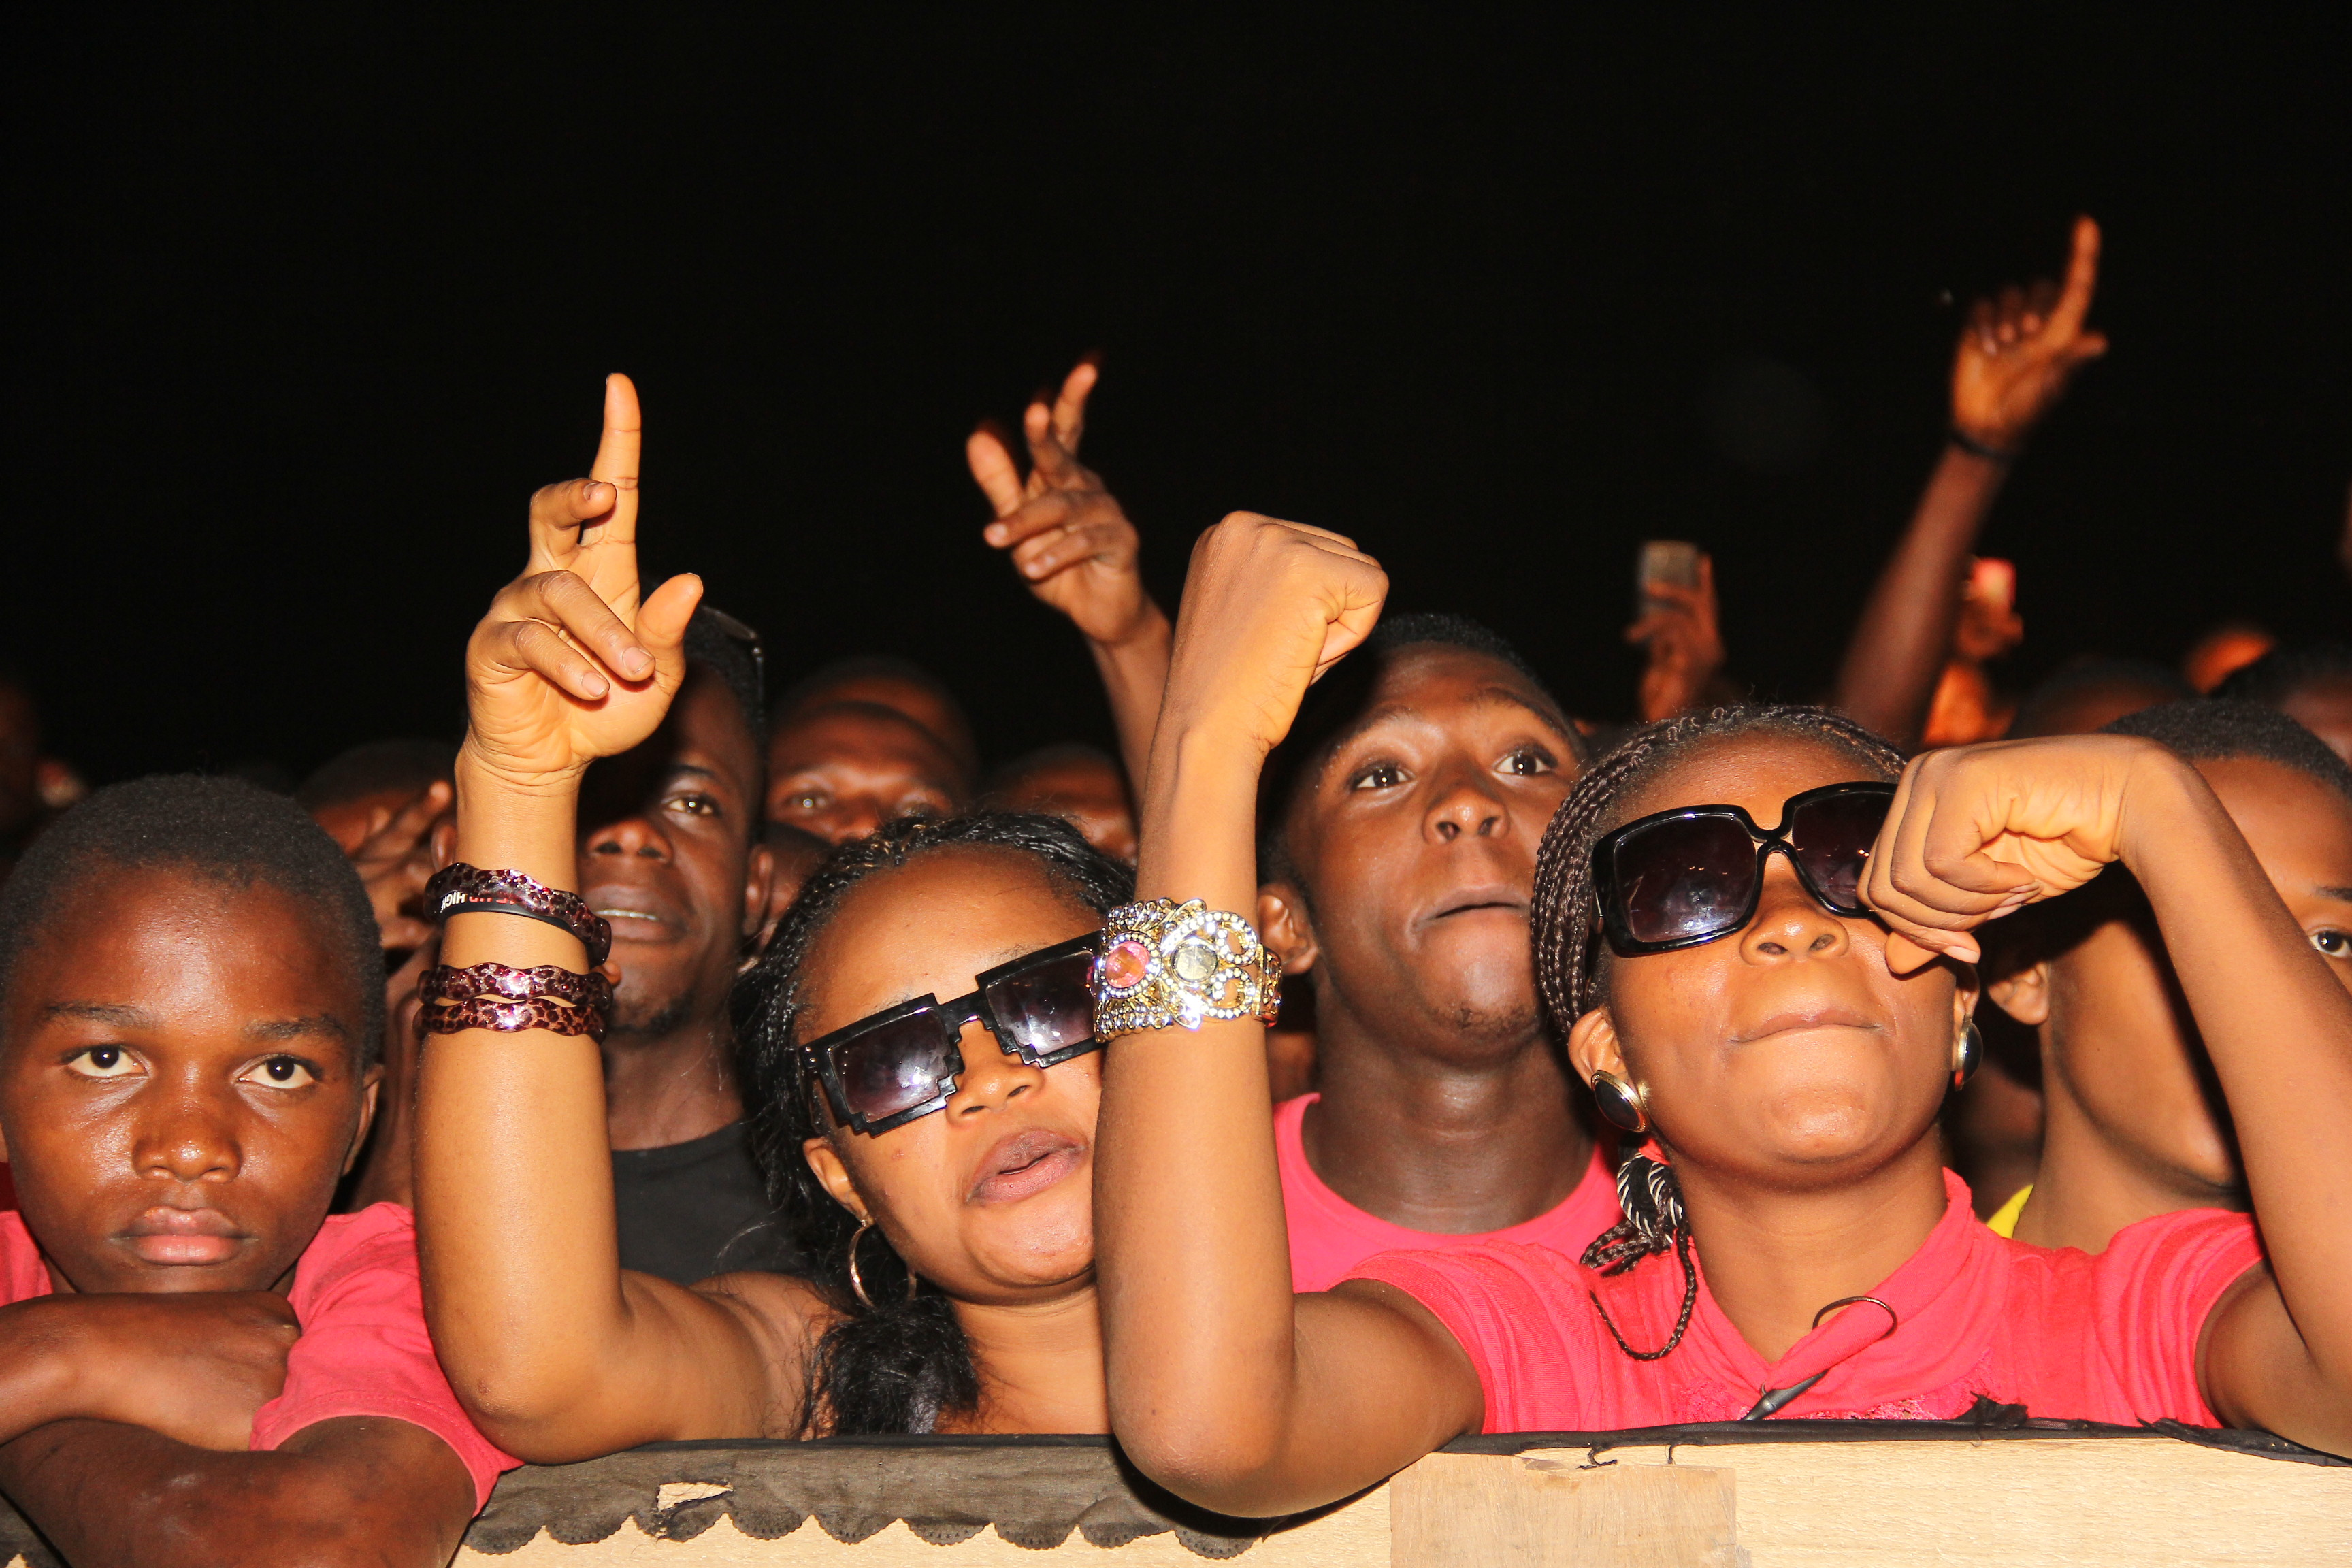 Fans in hysterical mood at the Blaze concert